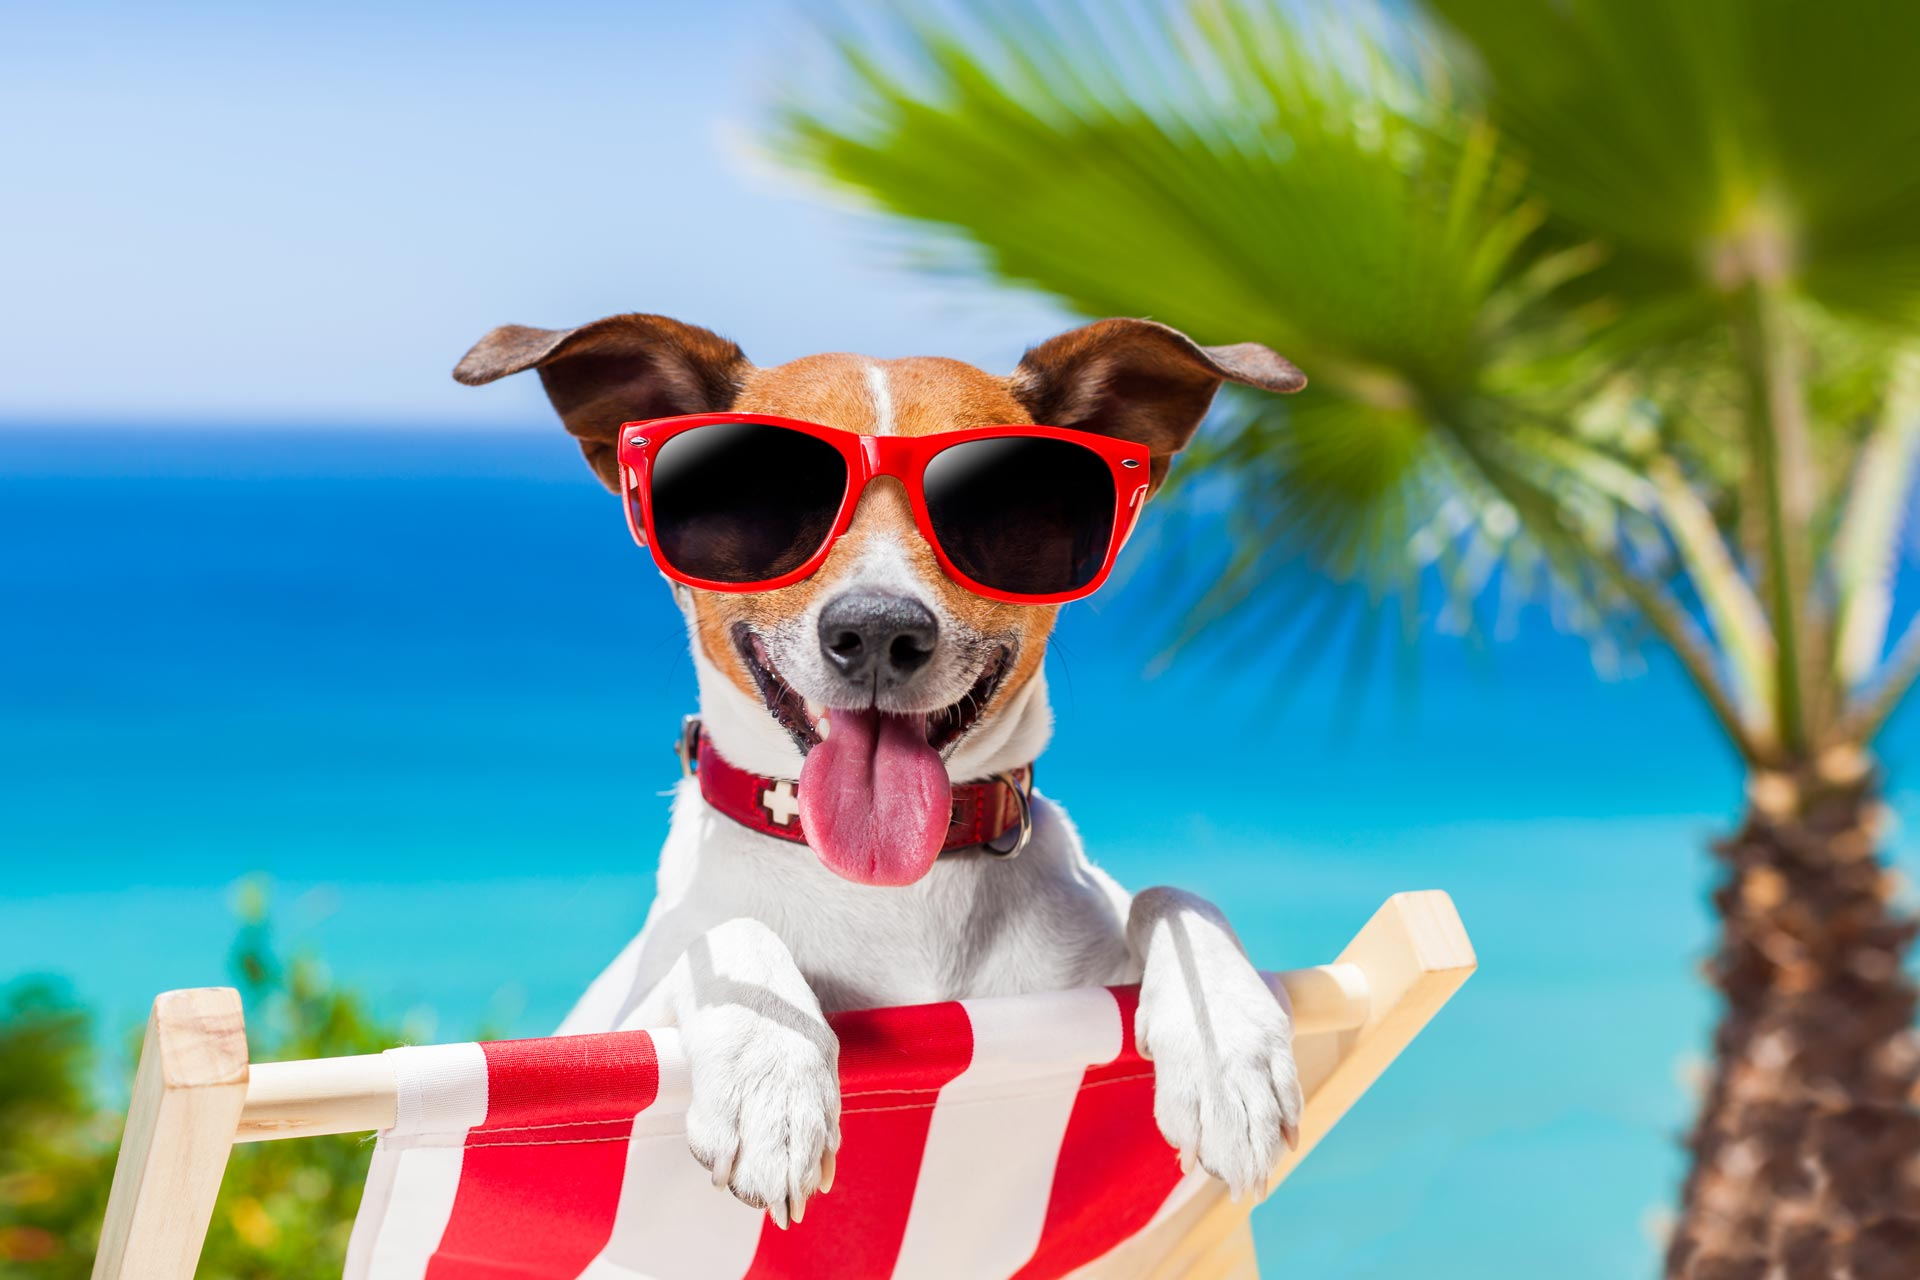 Smol dog in beach chair wearing red sunglasses